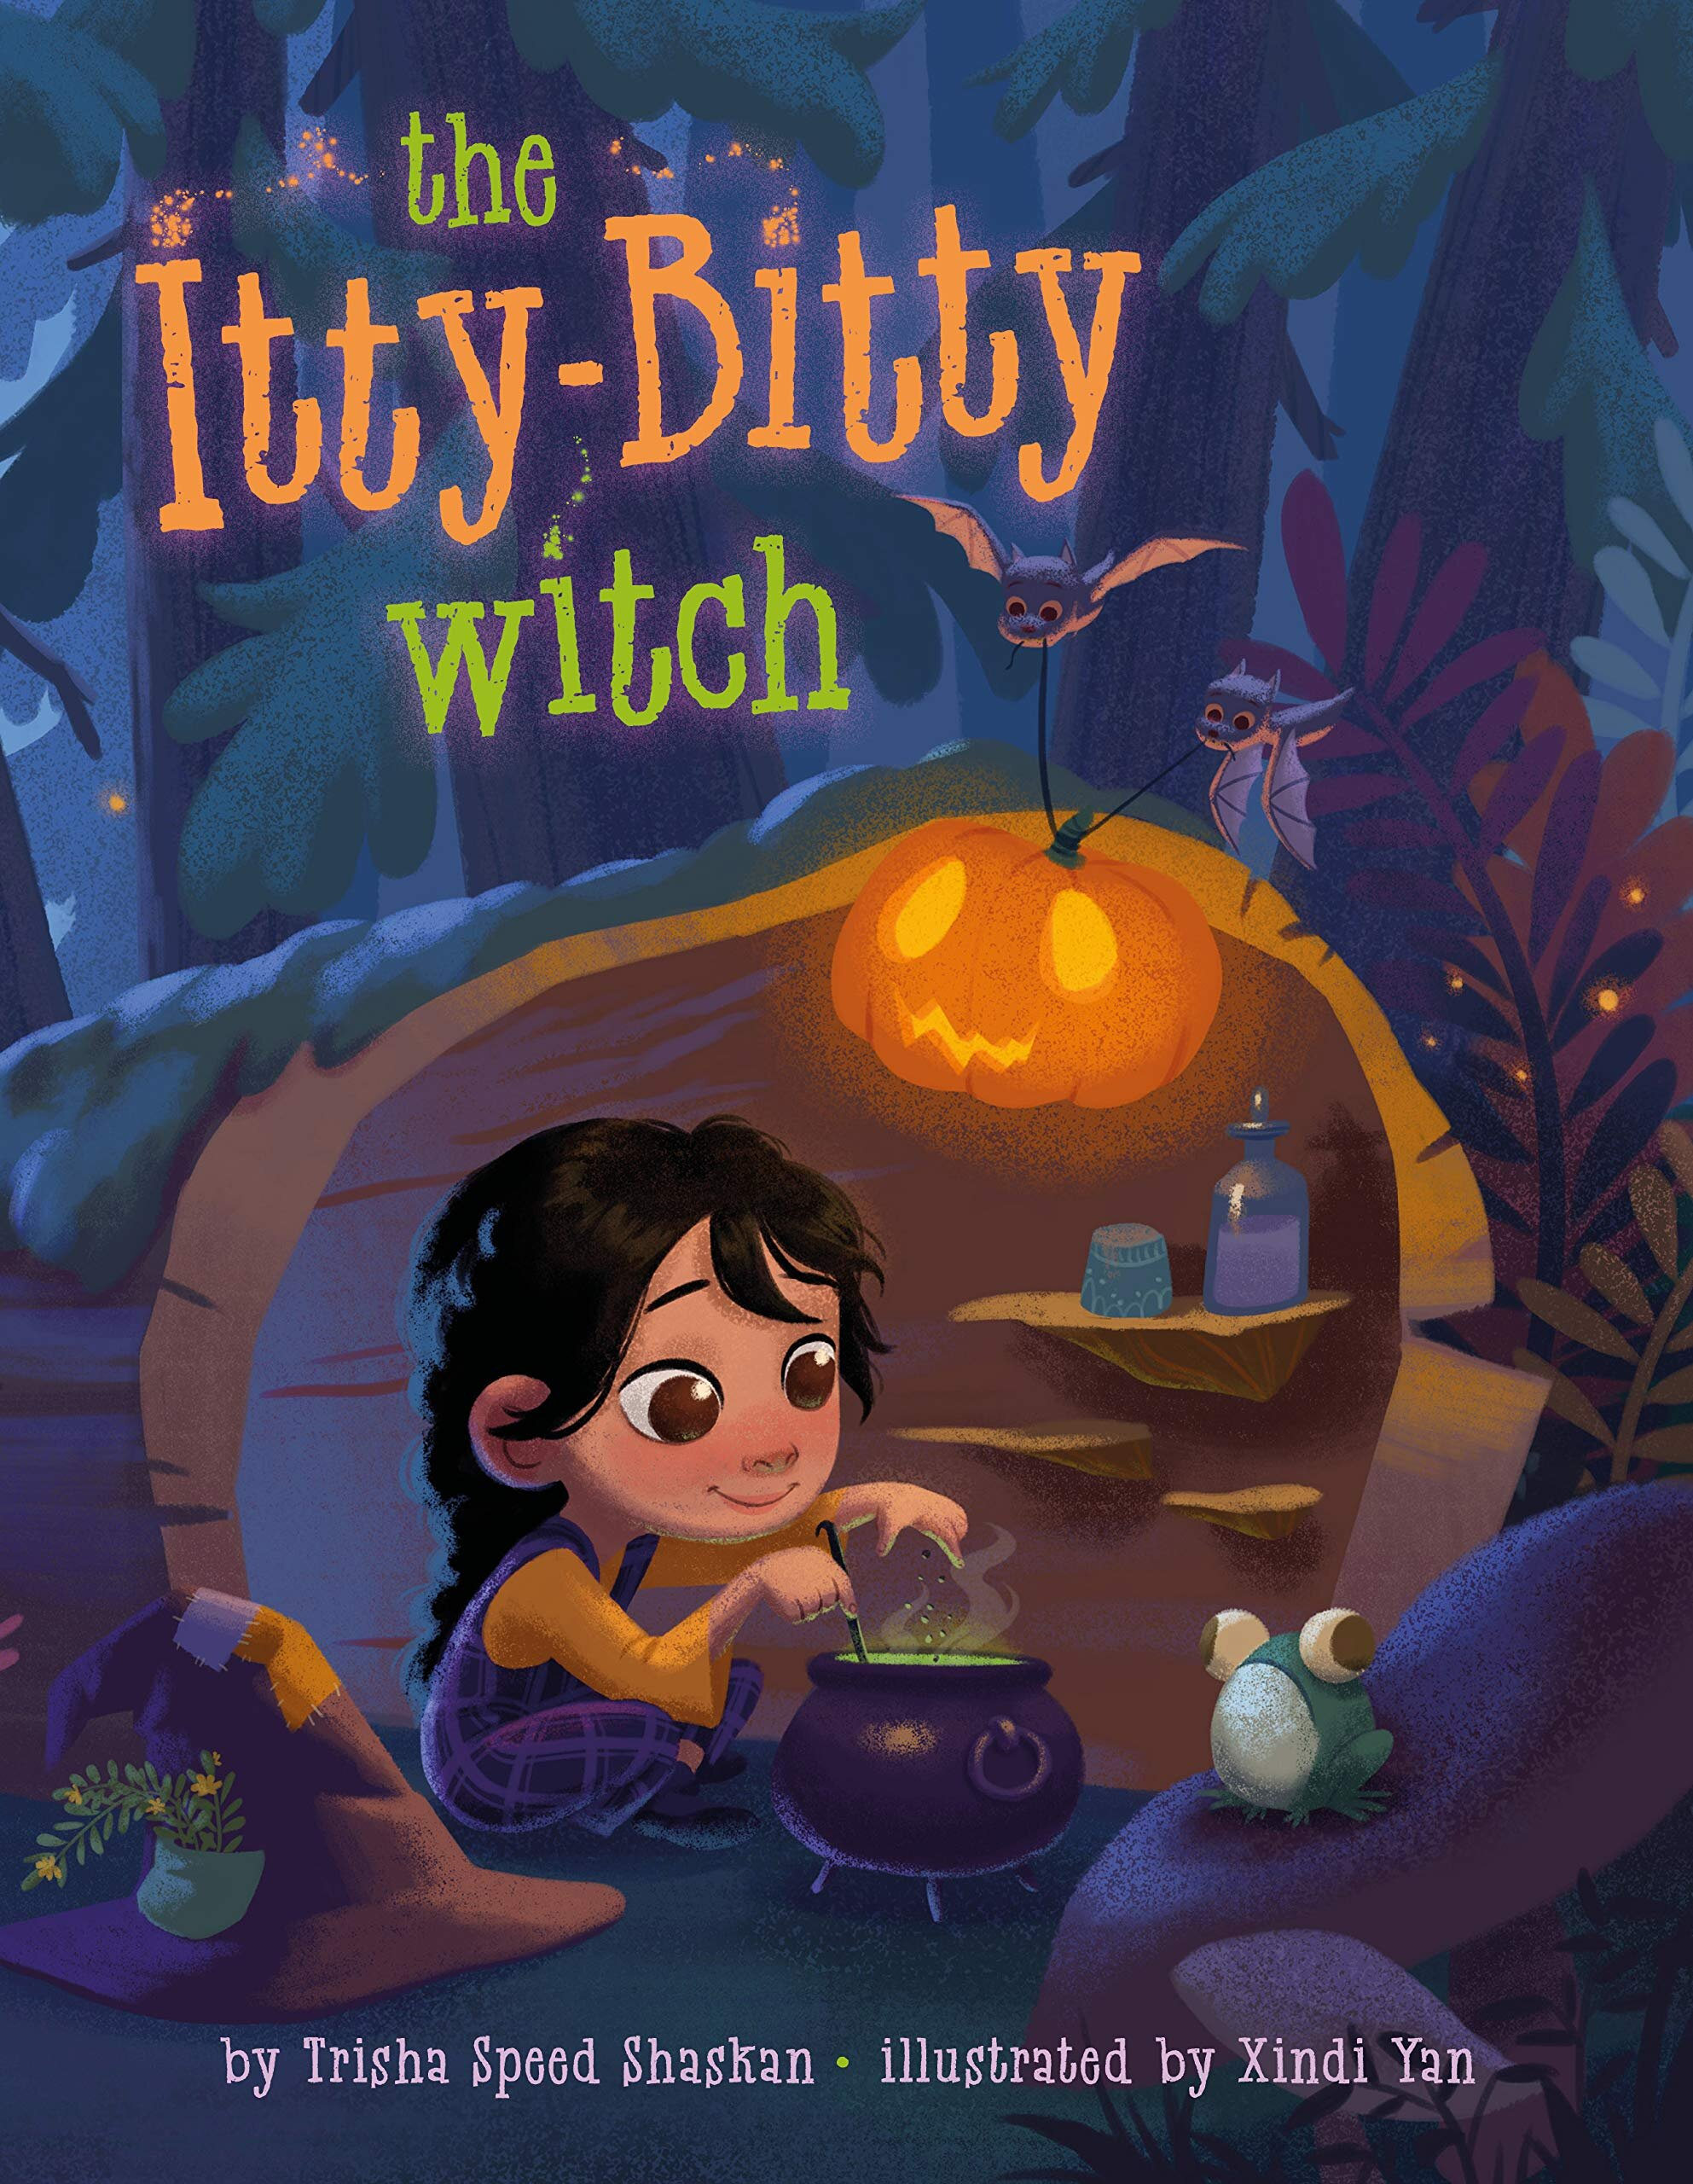 Best Halloween Picture Books of 2019 - The Itty-Bitty Witch.jpg